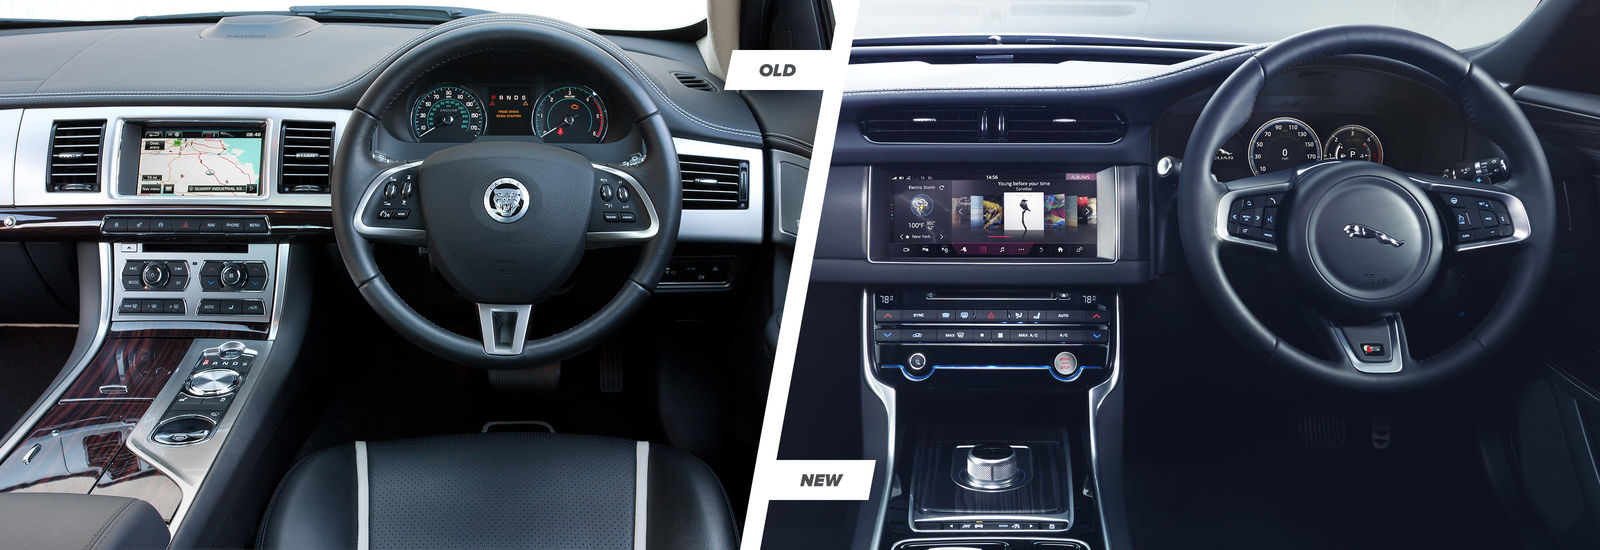 Jaguar Xf Old Vs New Compared Carwow